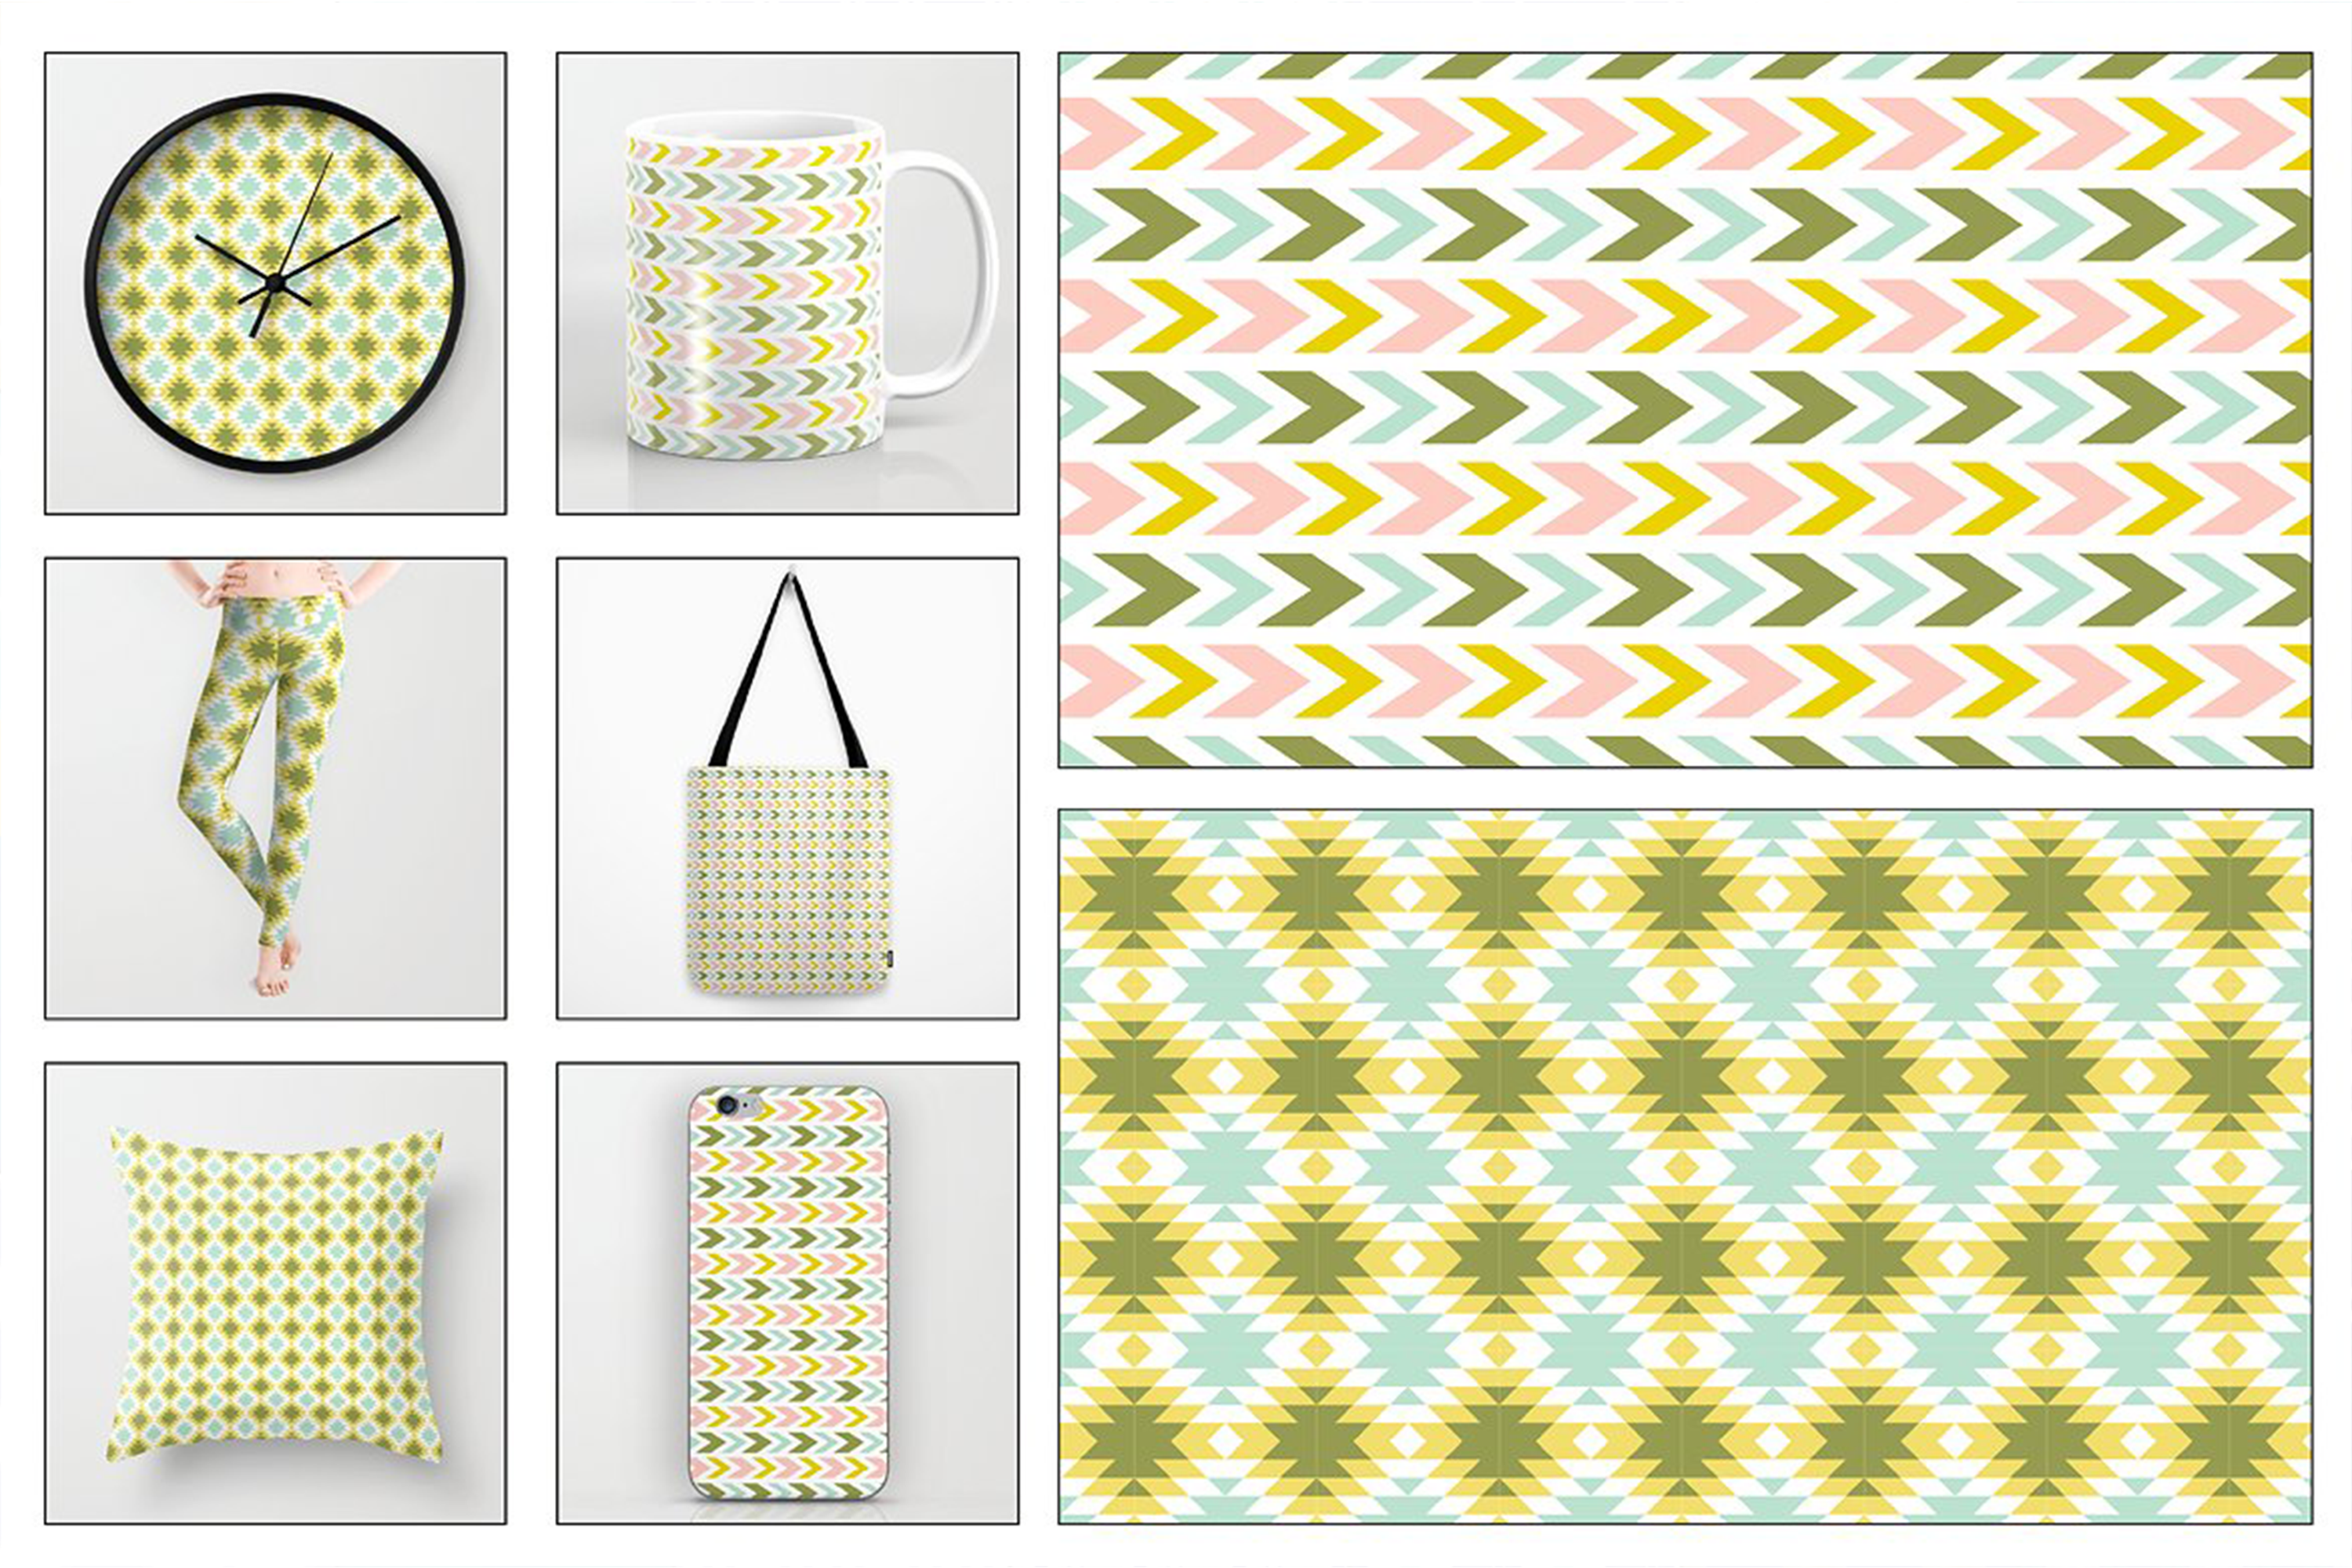 Seamless Pastel Native American Patterns example image 3